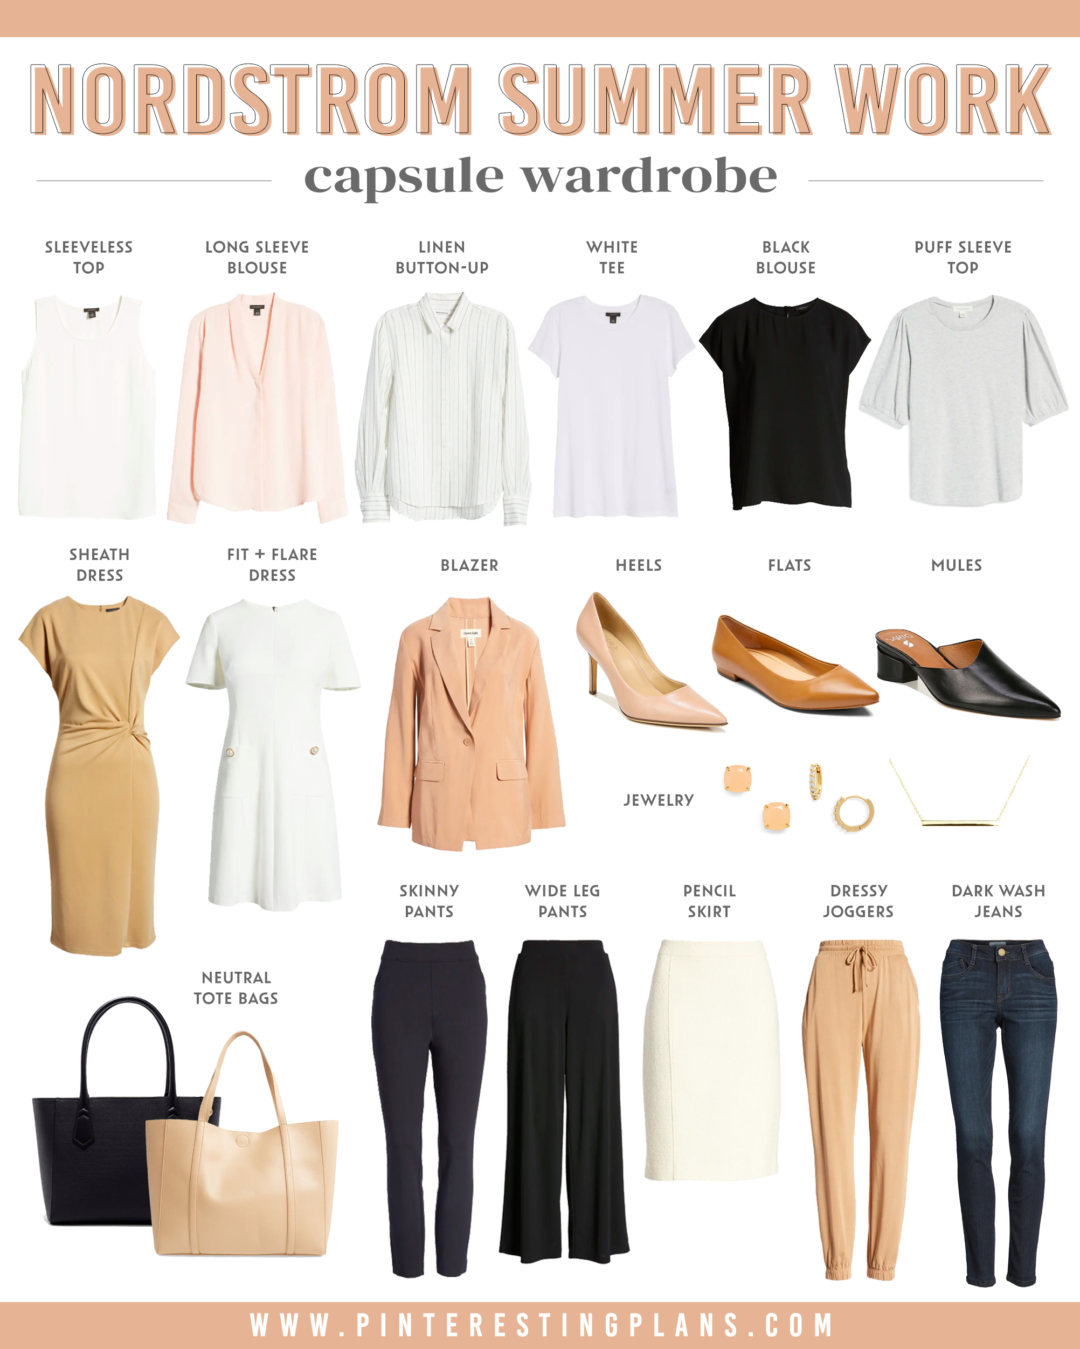 business casual summer capsule wardrobe for work from nordstrom 2021